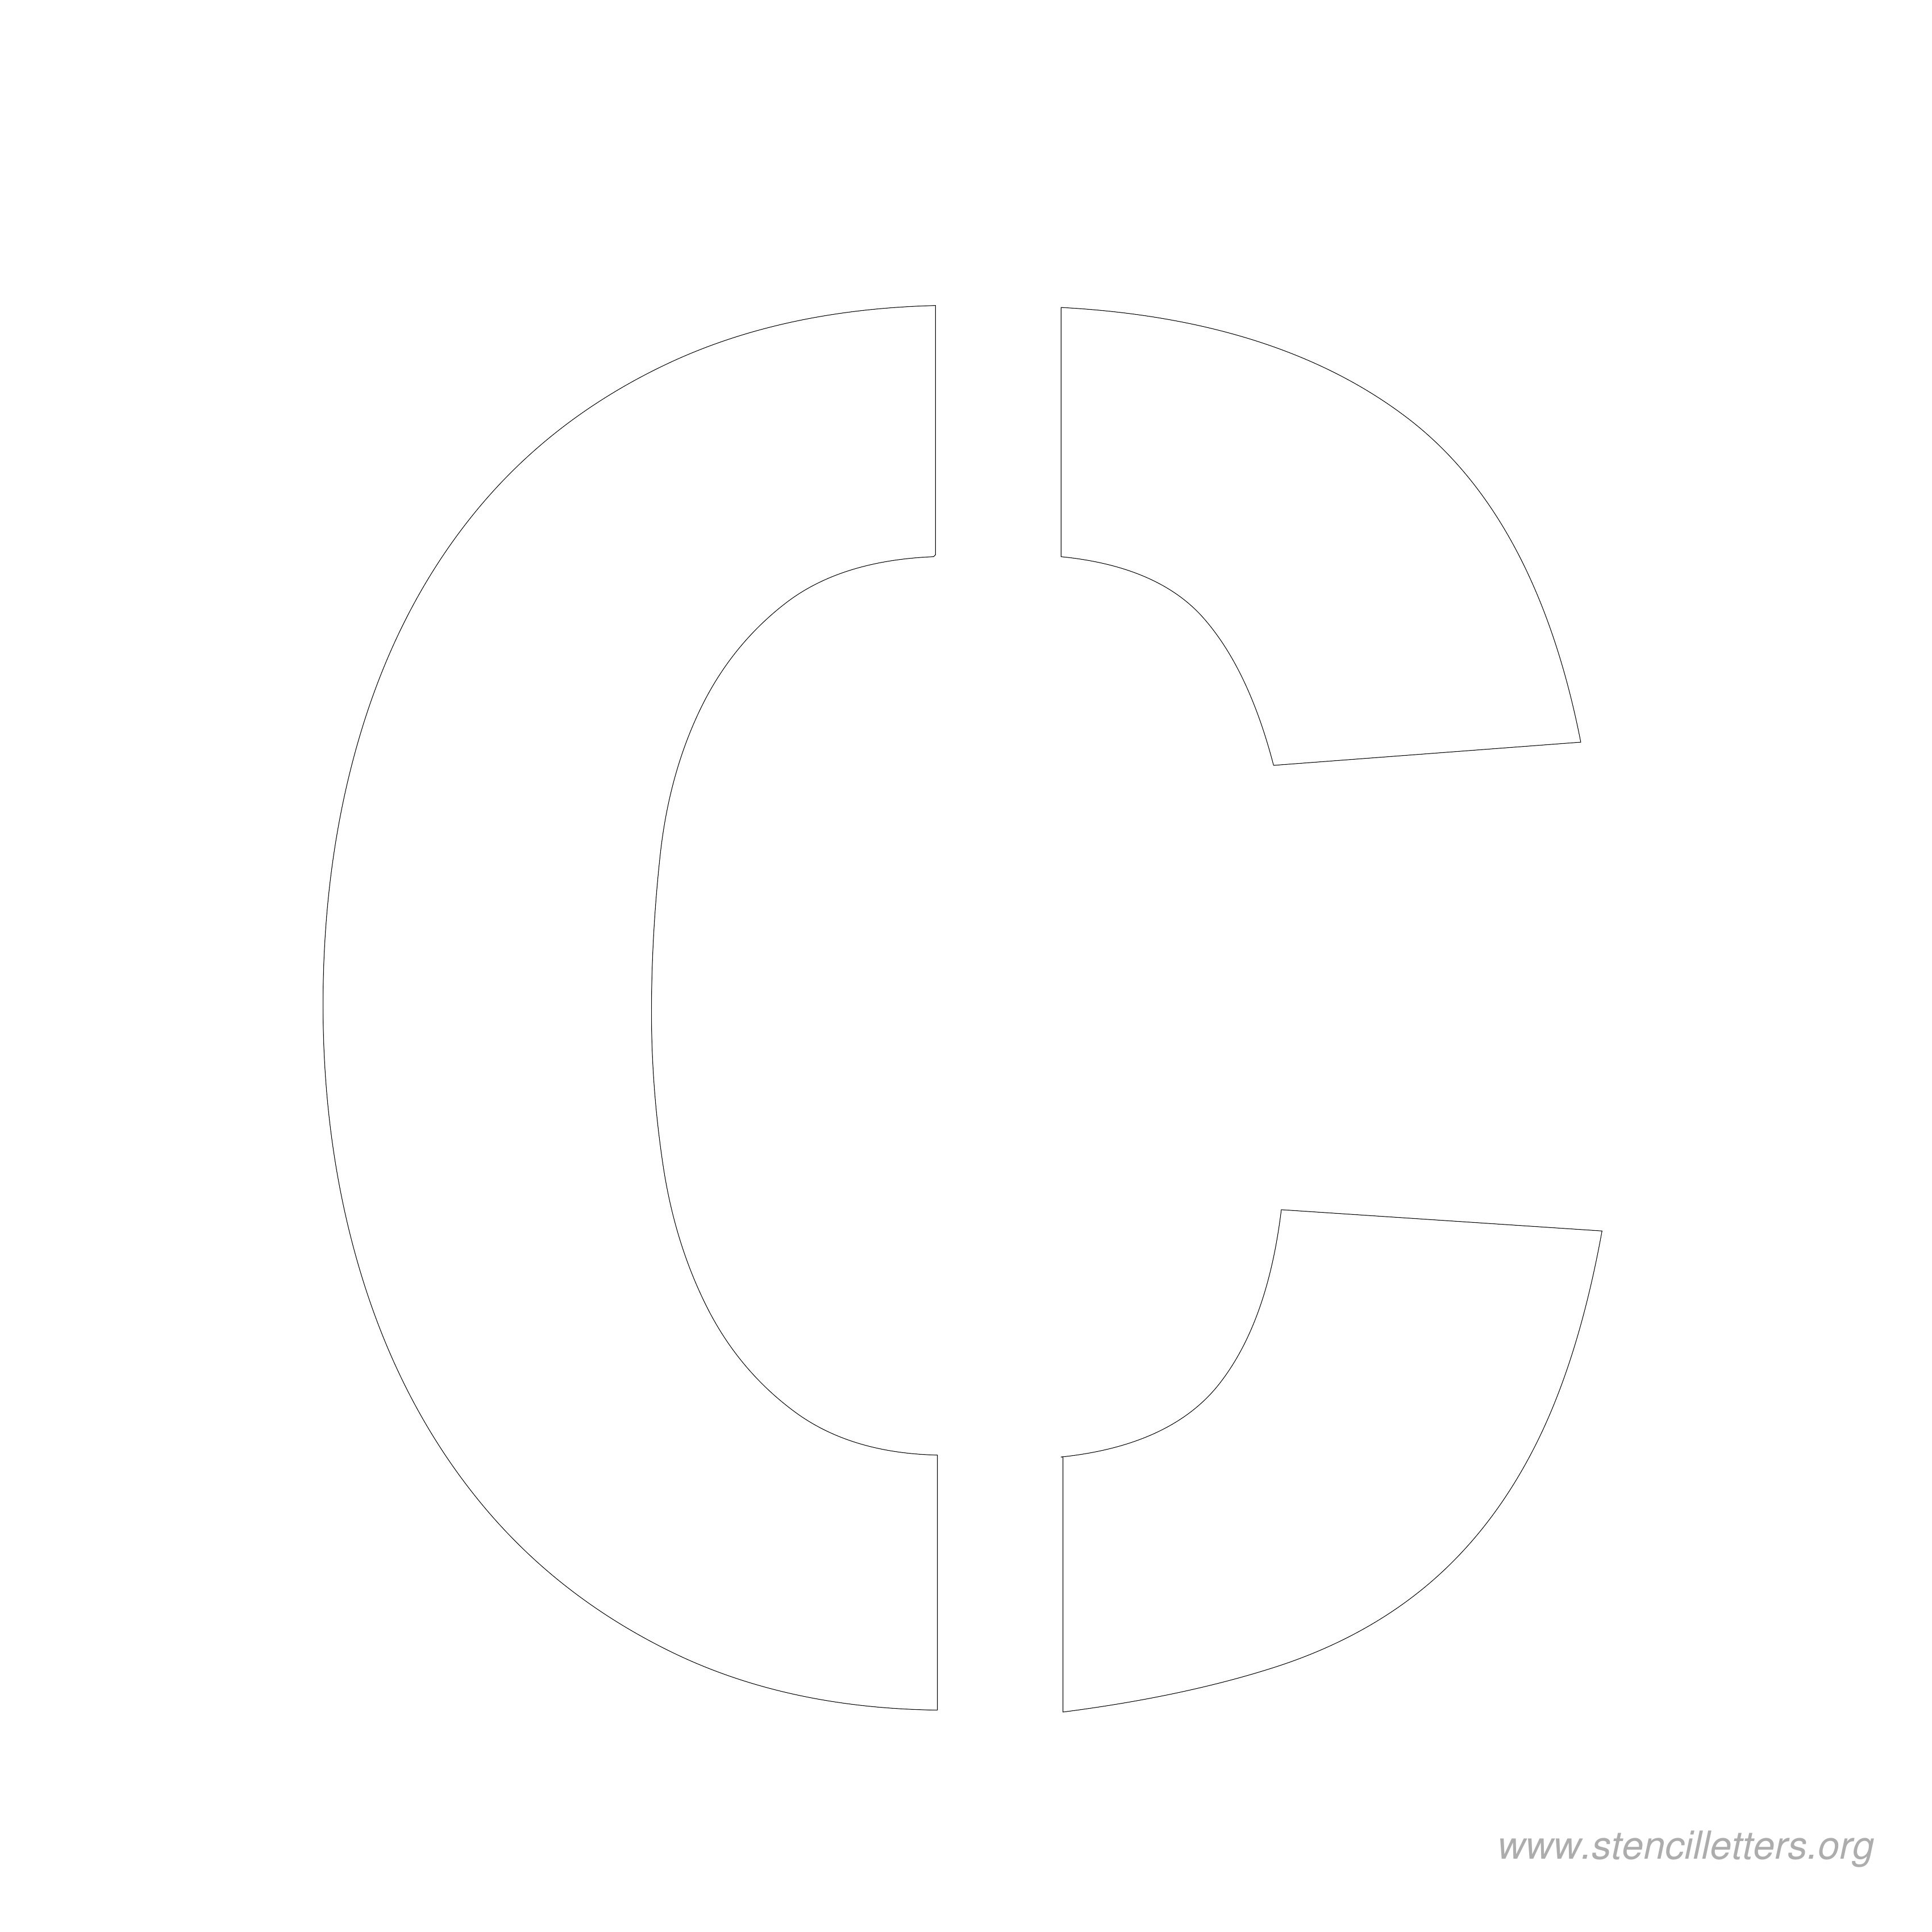 8 Inch Stencil Letters | Stencil Letters Org - Free Printable 10 Inch Letter Stencils